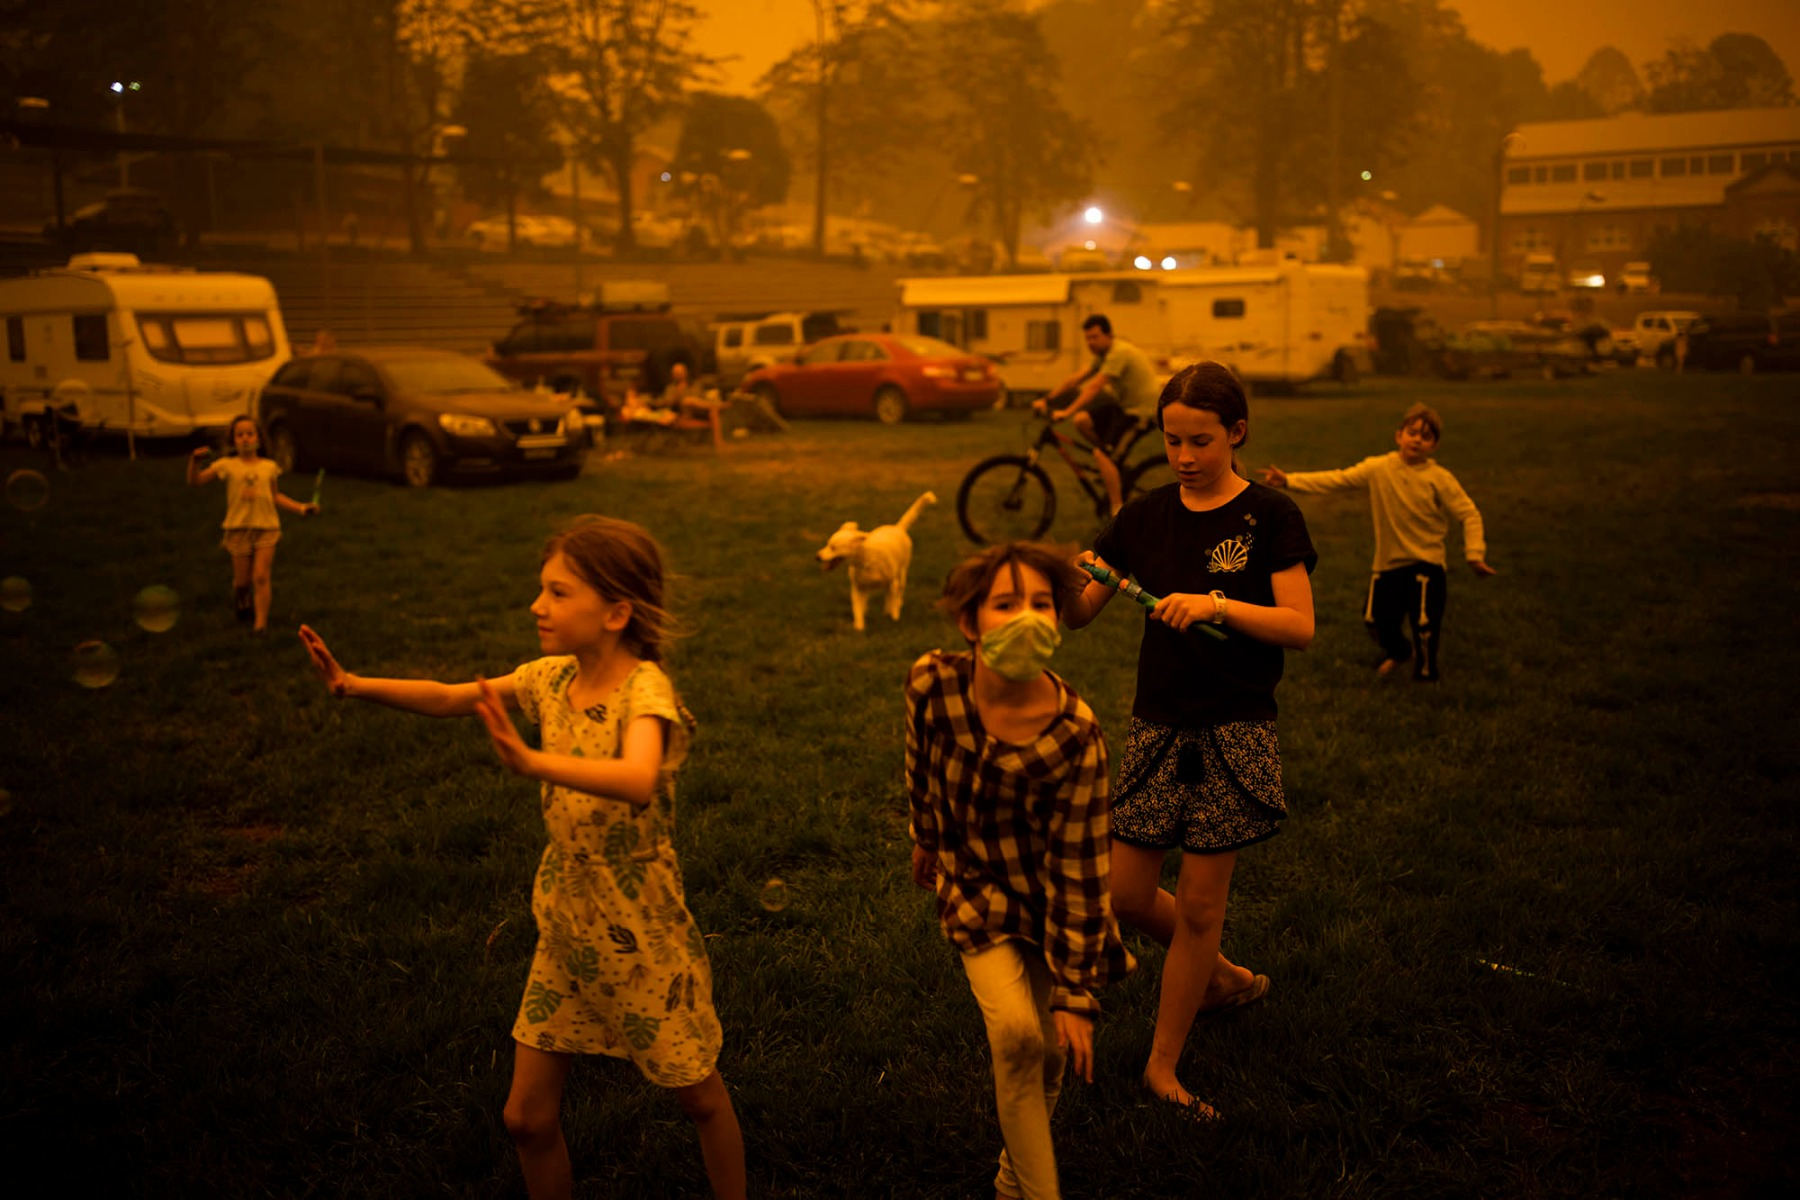 children-playing-in-smoke-haze-at-a-temporary-evacuation-centre-in-bega-nsw-australia-during-the-devestating-bushfire-season-of-late-2019